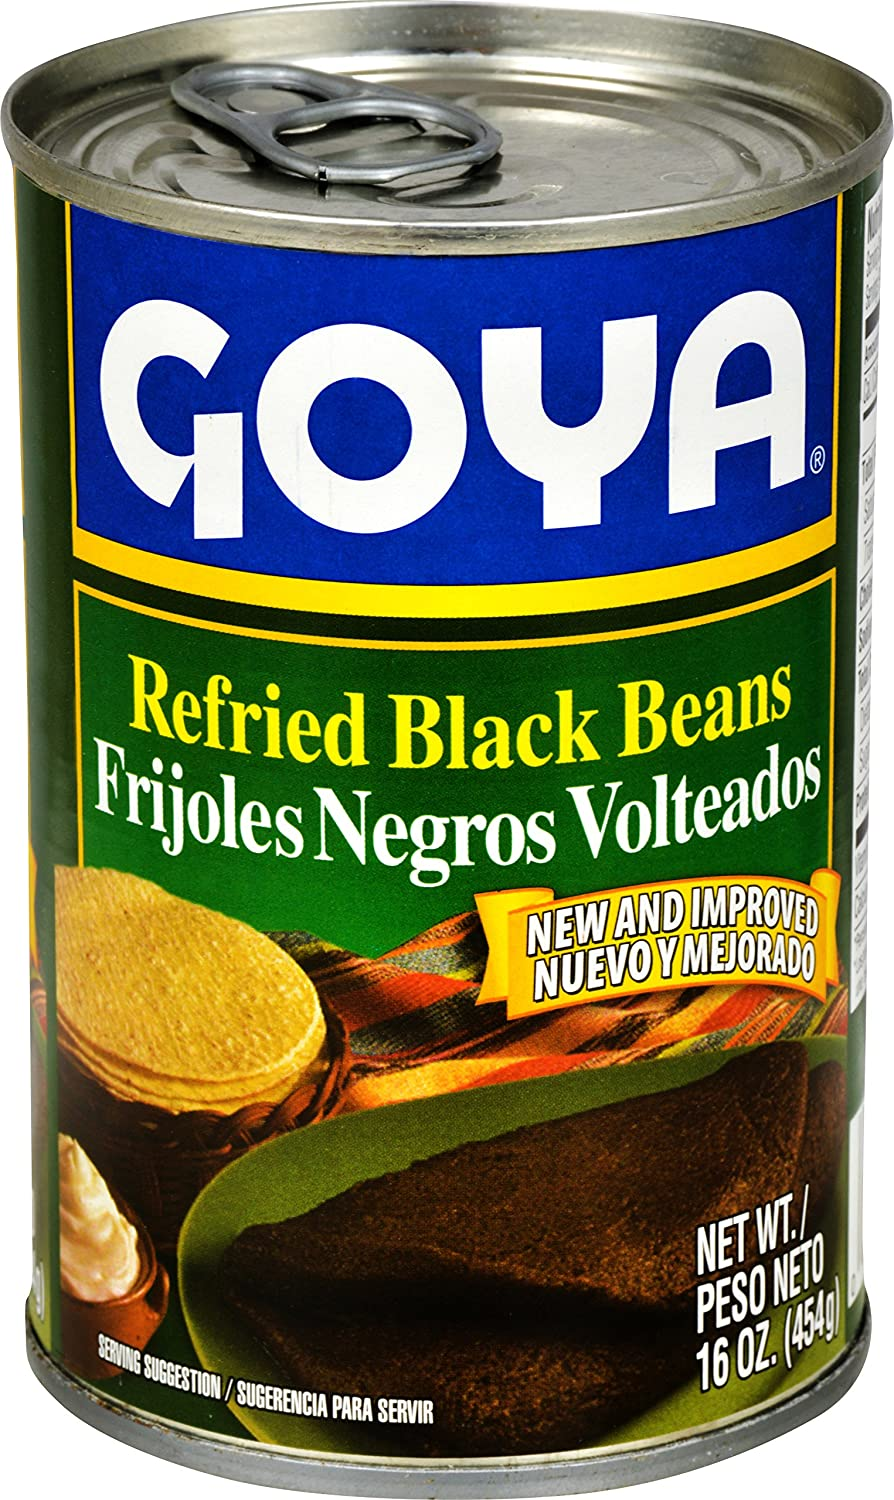 Amazon.com : Goya Foods Refried Black Beans (Frijoles Negros Volteados), 16-Ounce (Pack of 12) : Black Beans Produce : Grocery & Gourmet Food